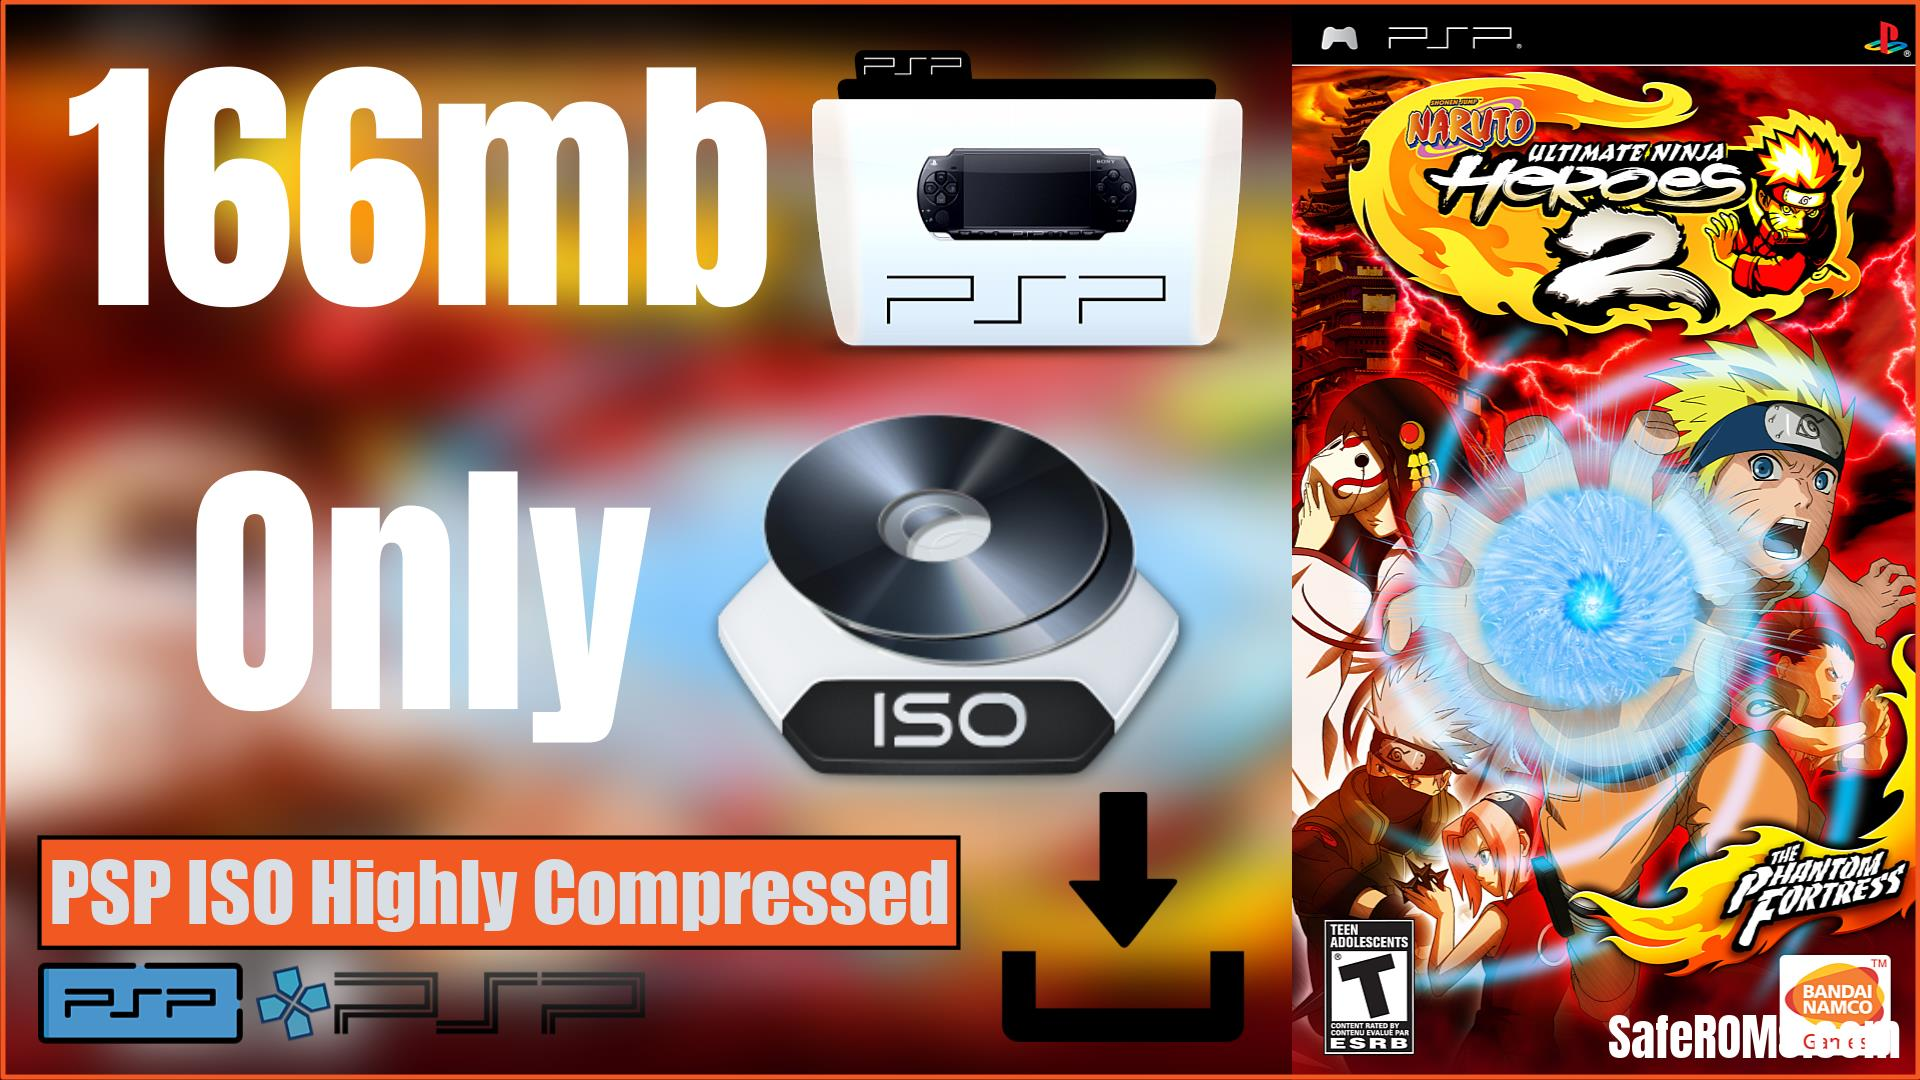 Naruto Ultimate Ninja Heroes 2 The Phantom Fortress PSP ISO Highly Compressed Download